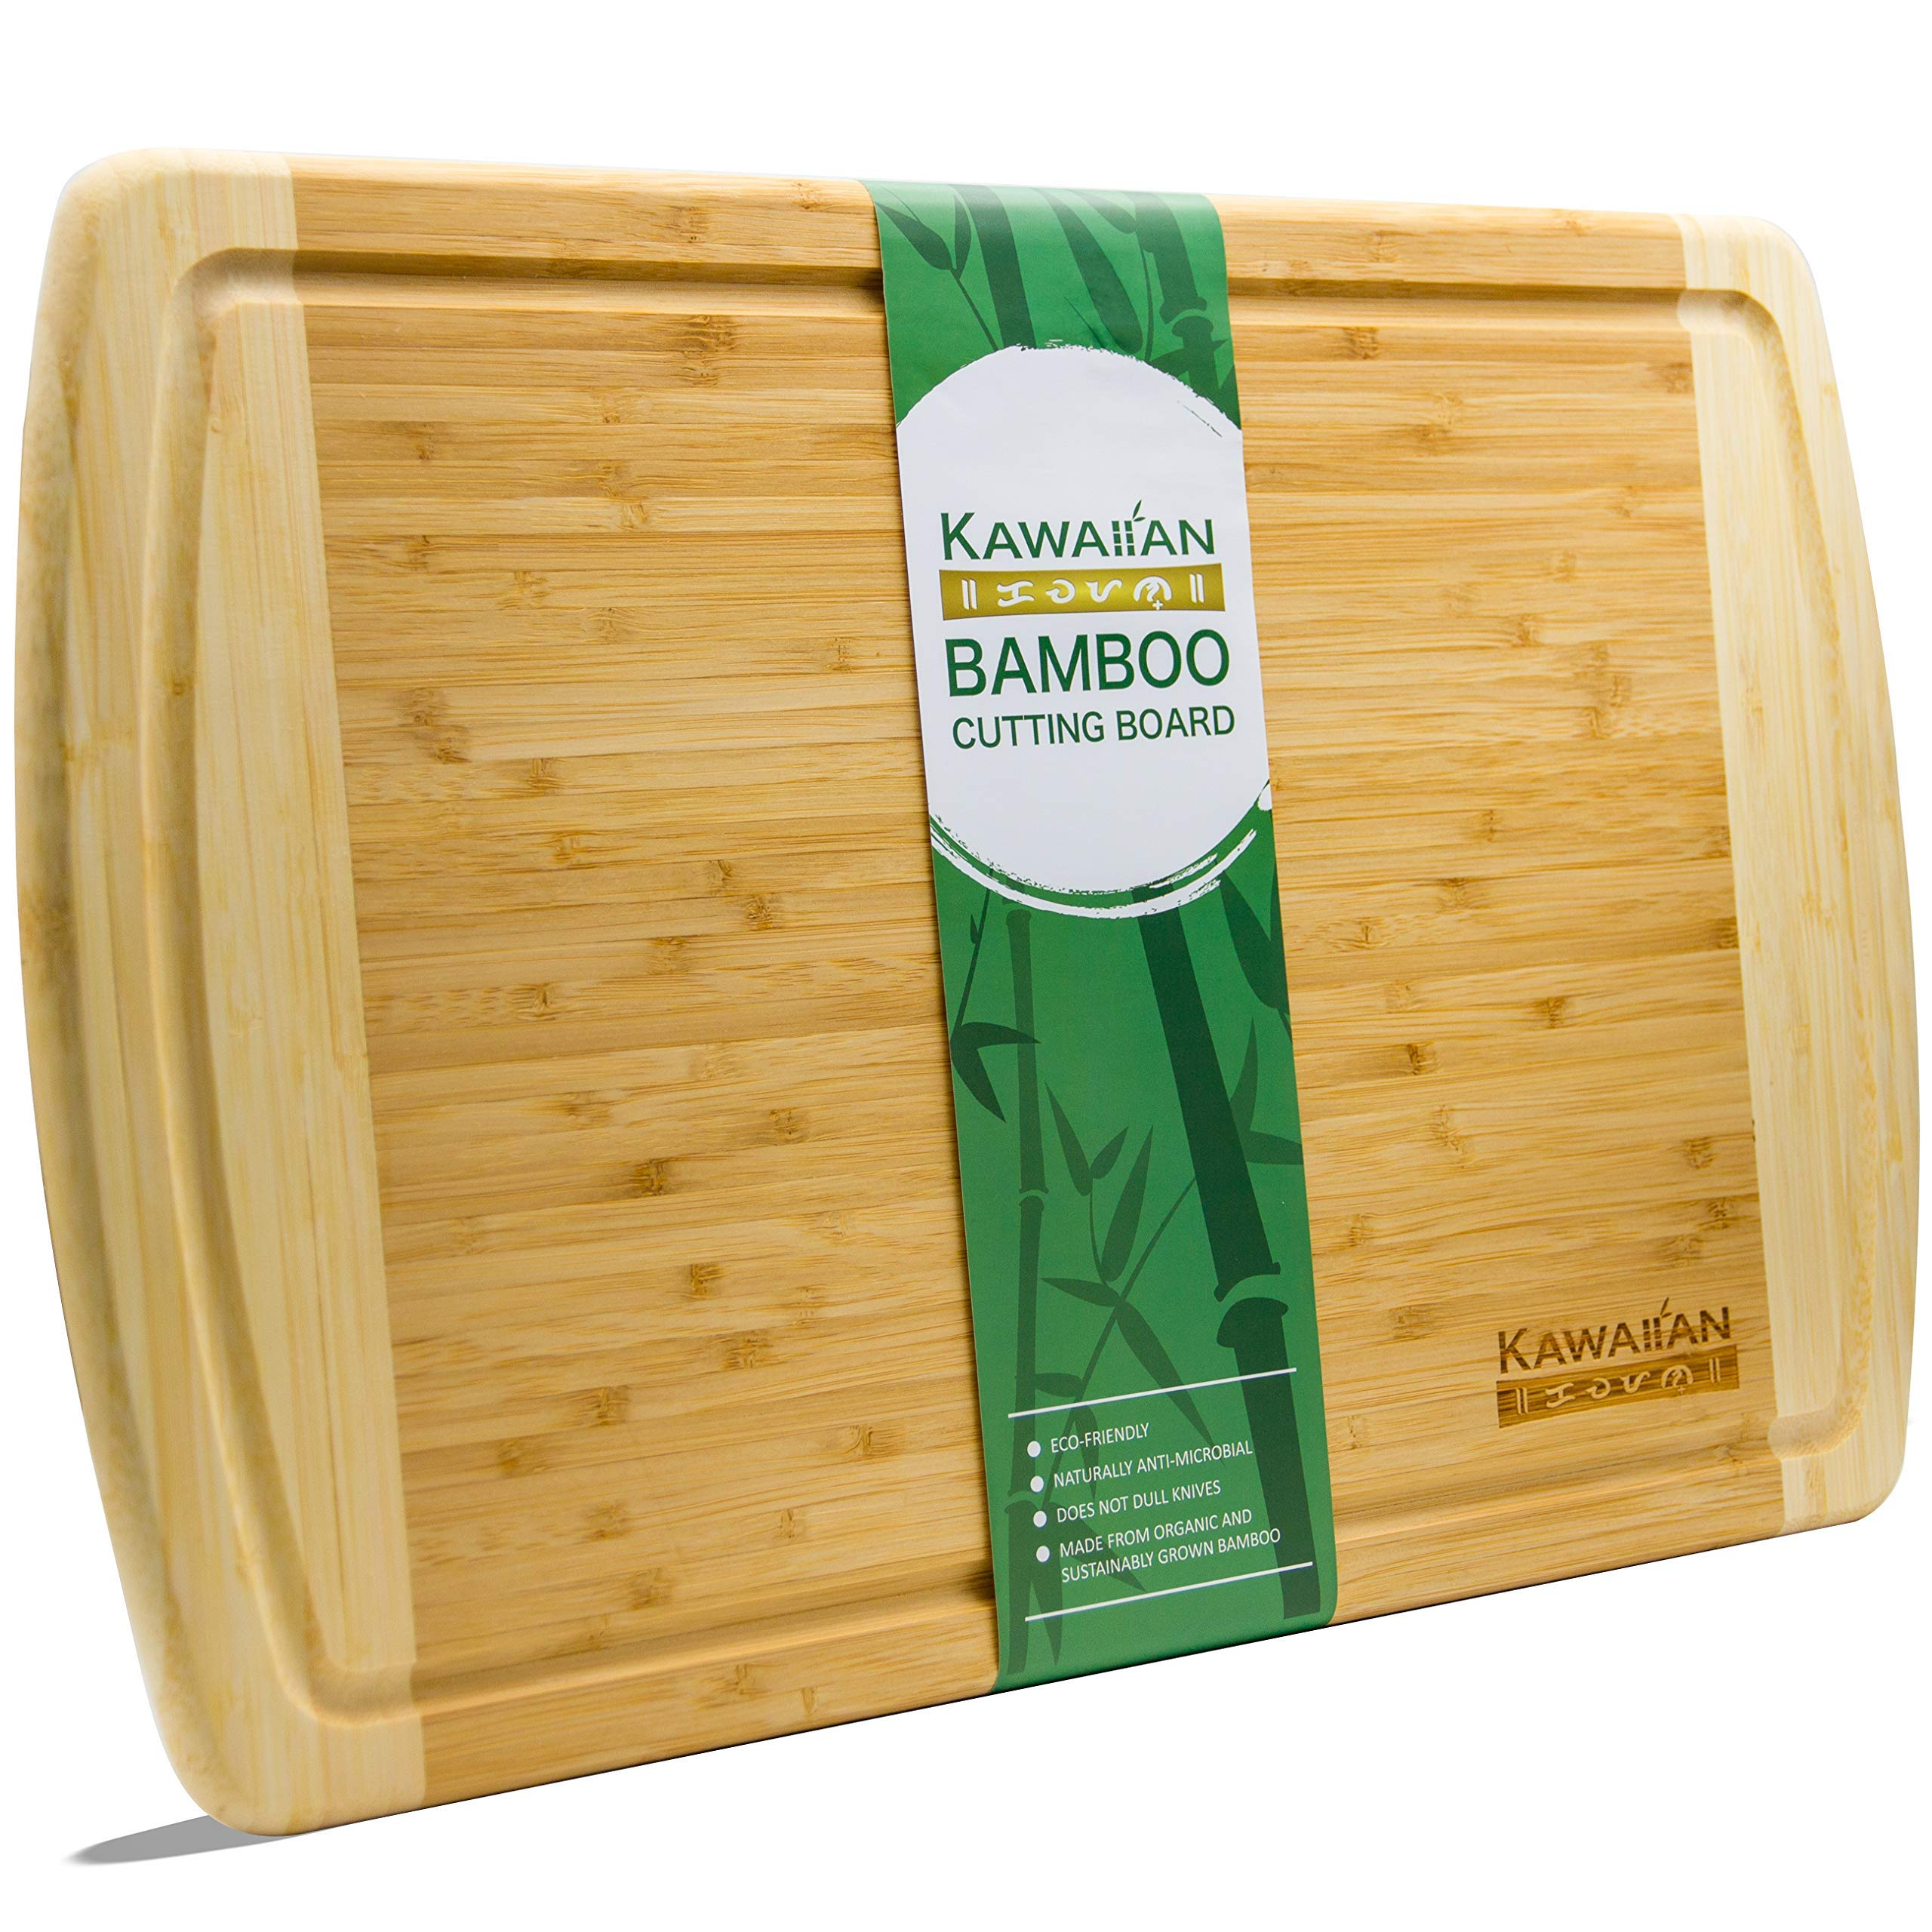 Organic Bamboo Cutting Board by Kawaiian - Extra Large & Versatile with Drip Groove - 18'' x 12.5'' - Premium Kitchen Chopping Board & Wooden Serving Tray